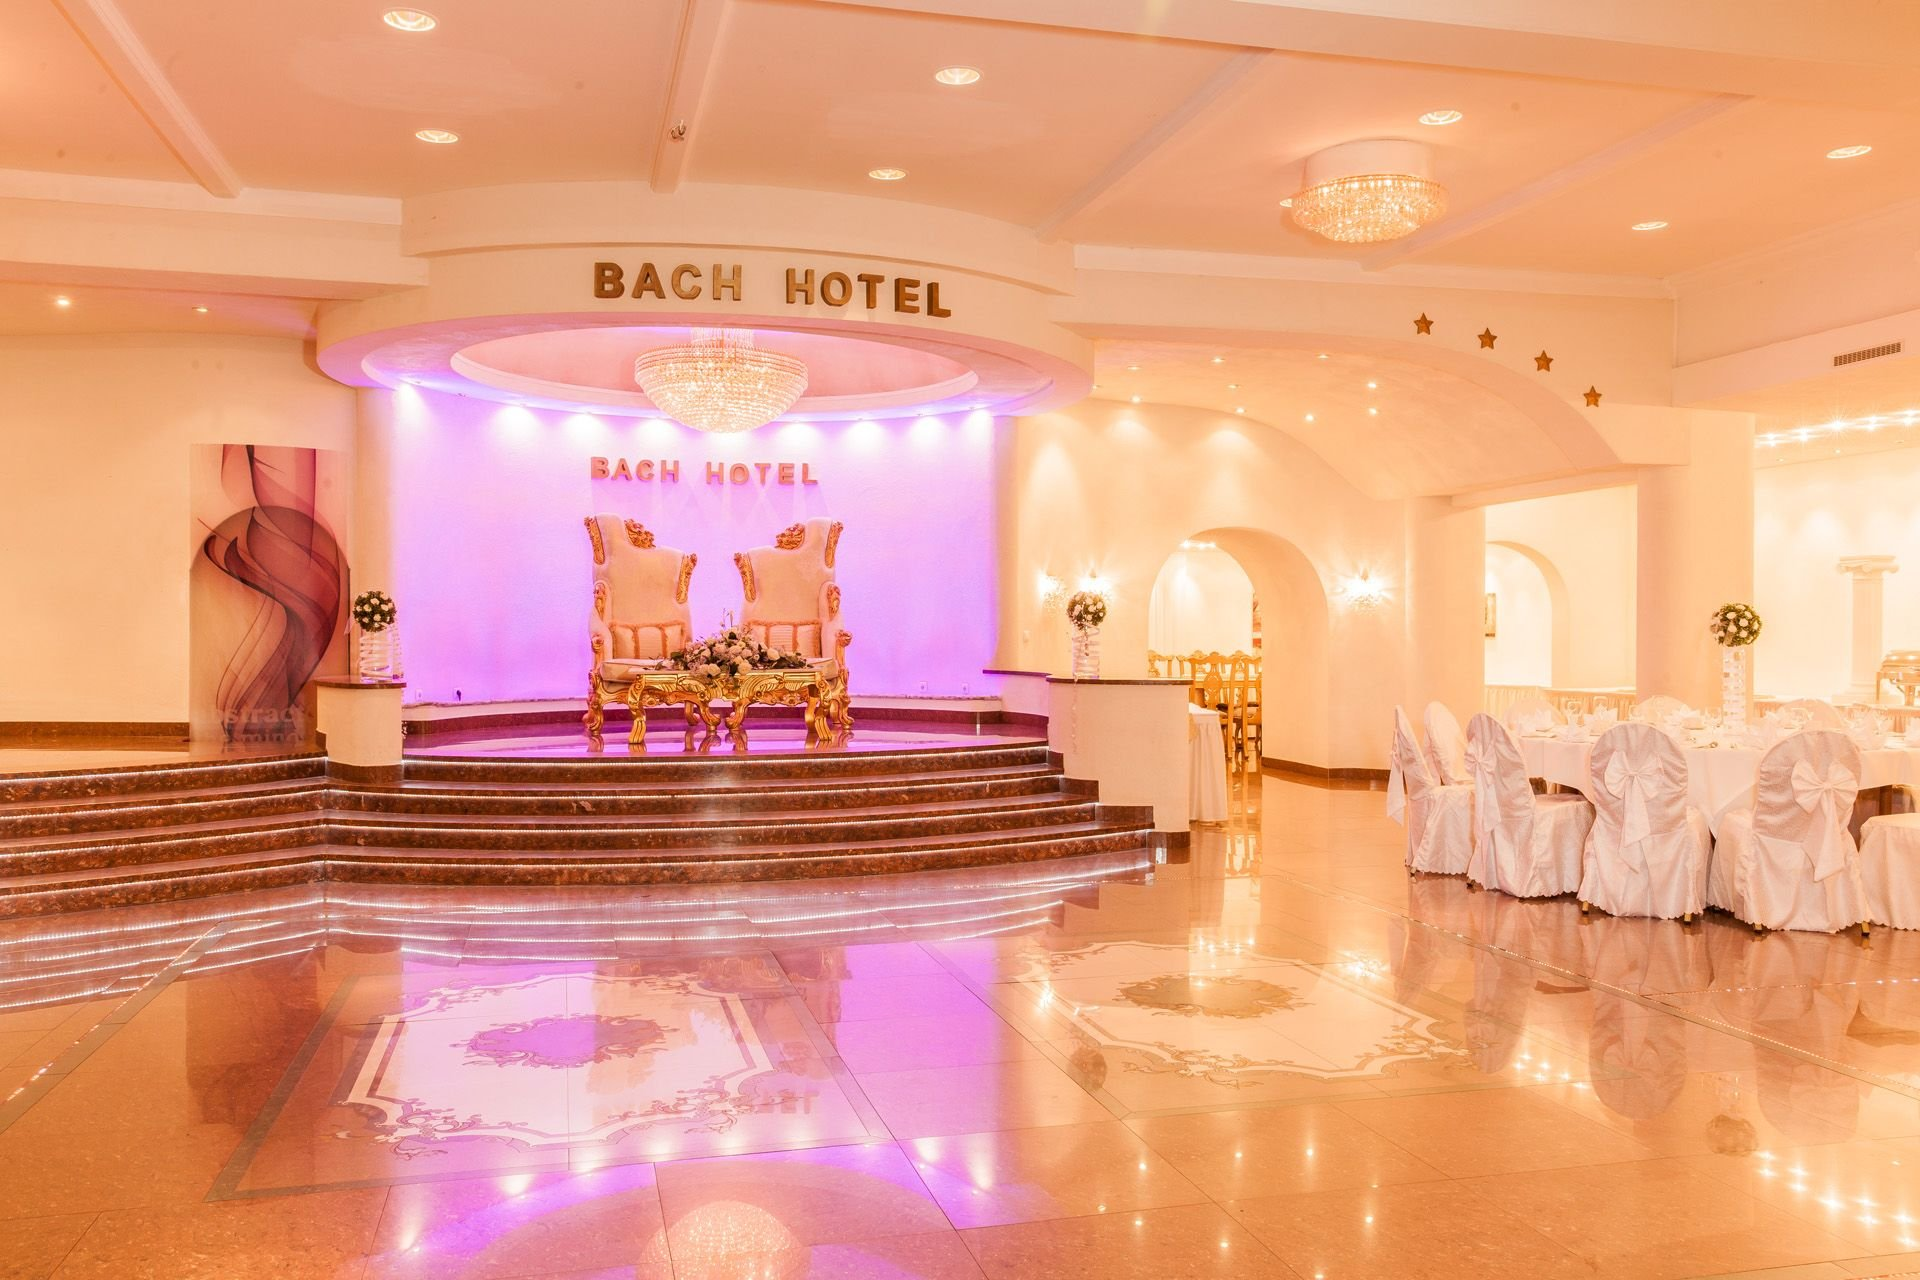 Bach Hotel Welcome To Bach Hotel